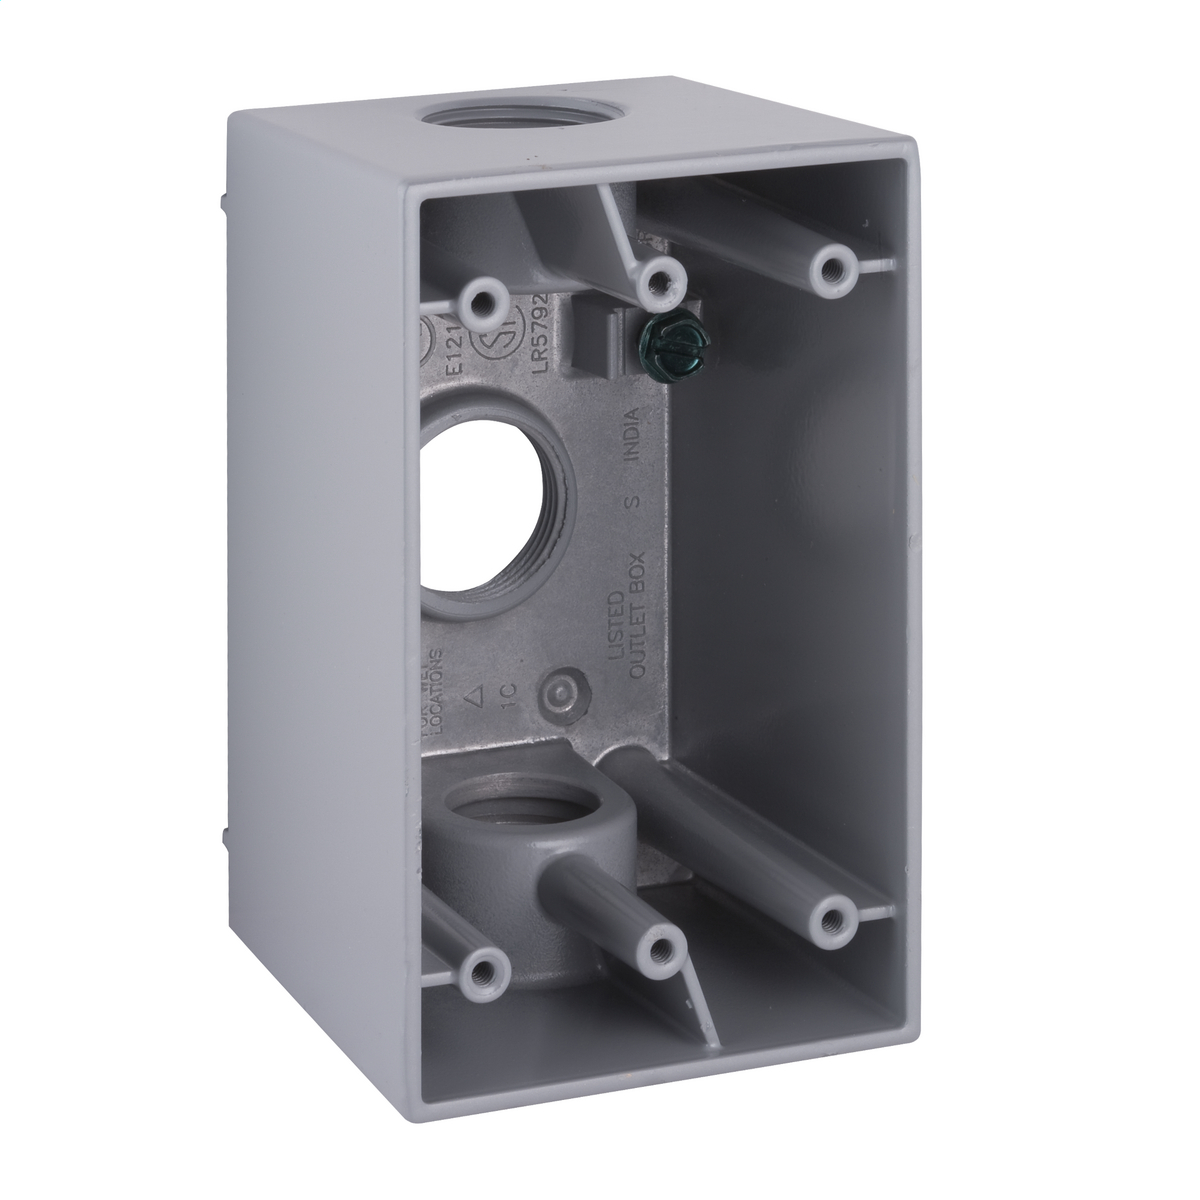 Hubbell-Raco 5386-0 BELL Weatherproof Outlet Box